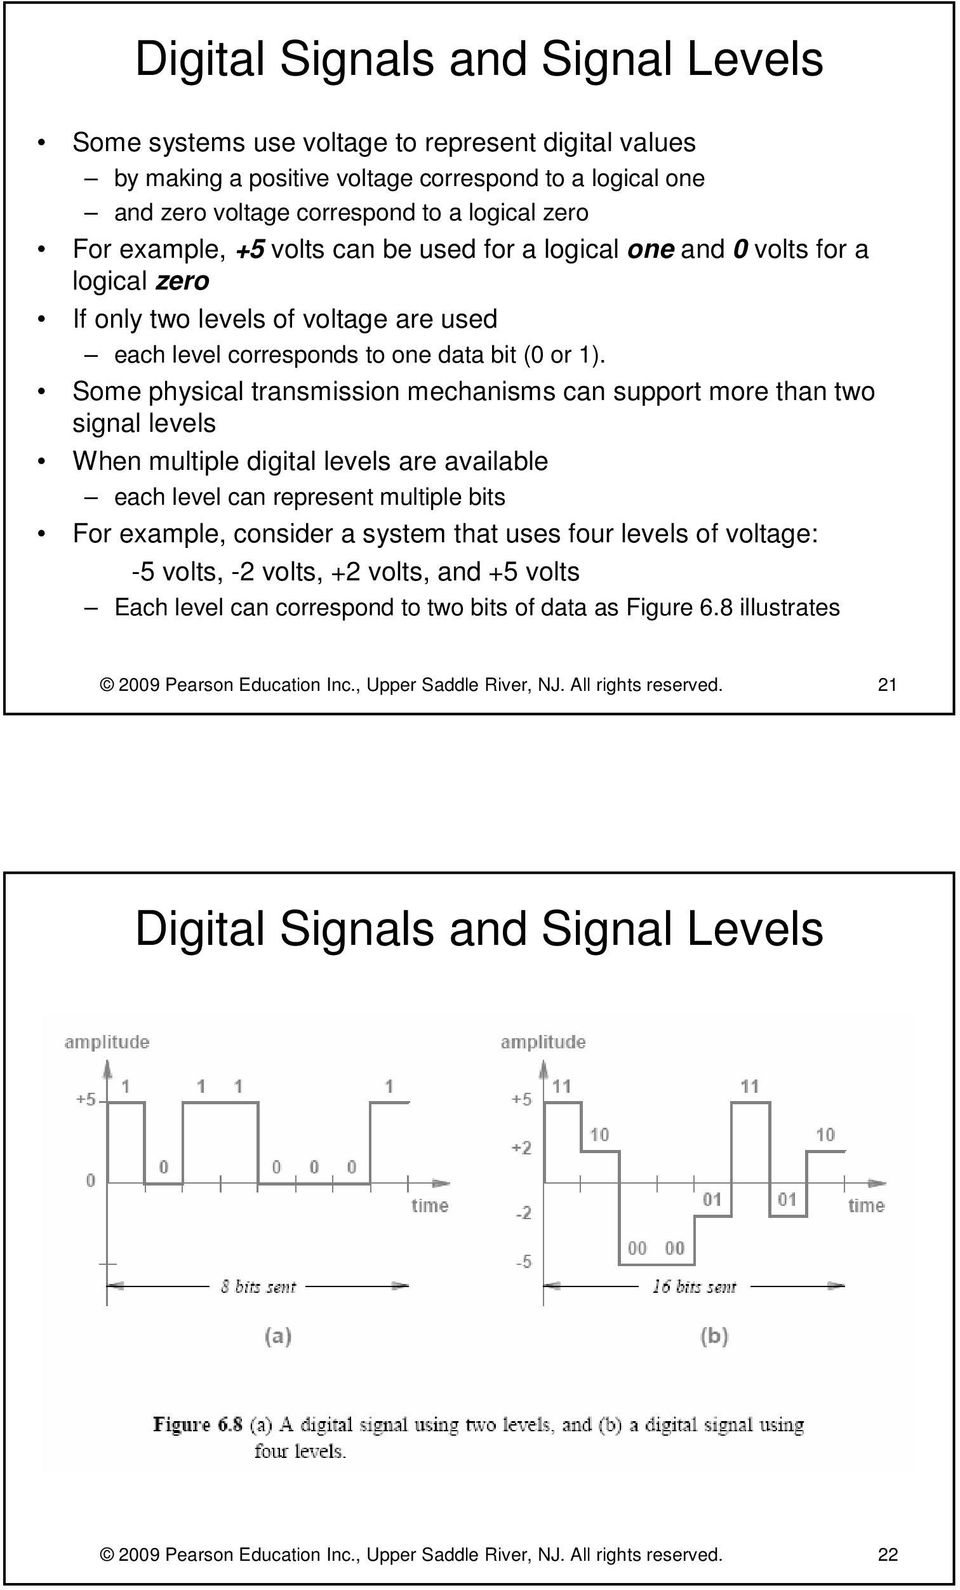 Some physical transmission mechanisms can support more than two signal levels When multiple digital levels are available each level can represent multiple bits For example, consider a system that